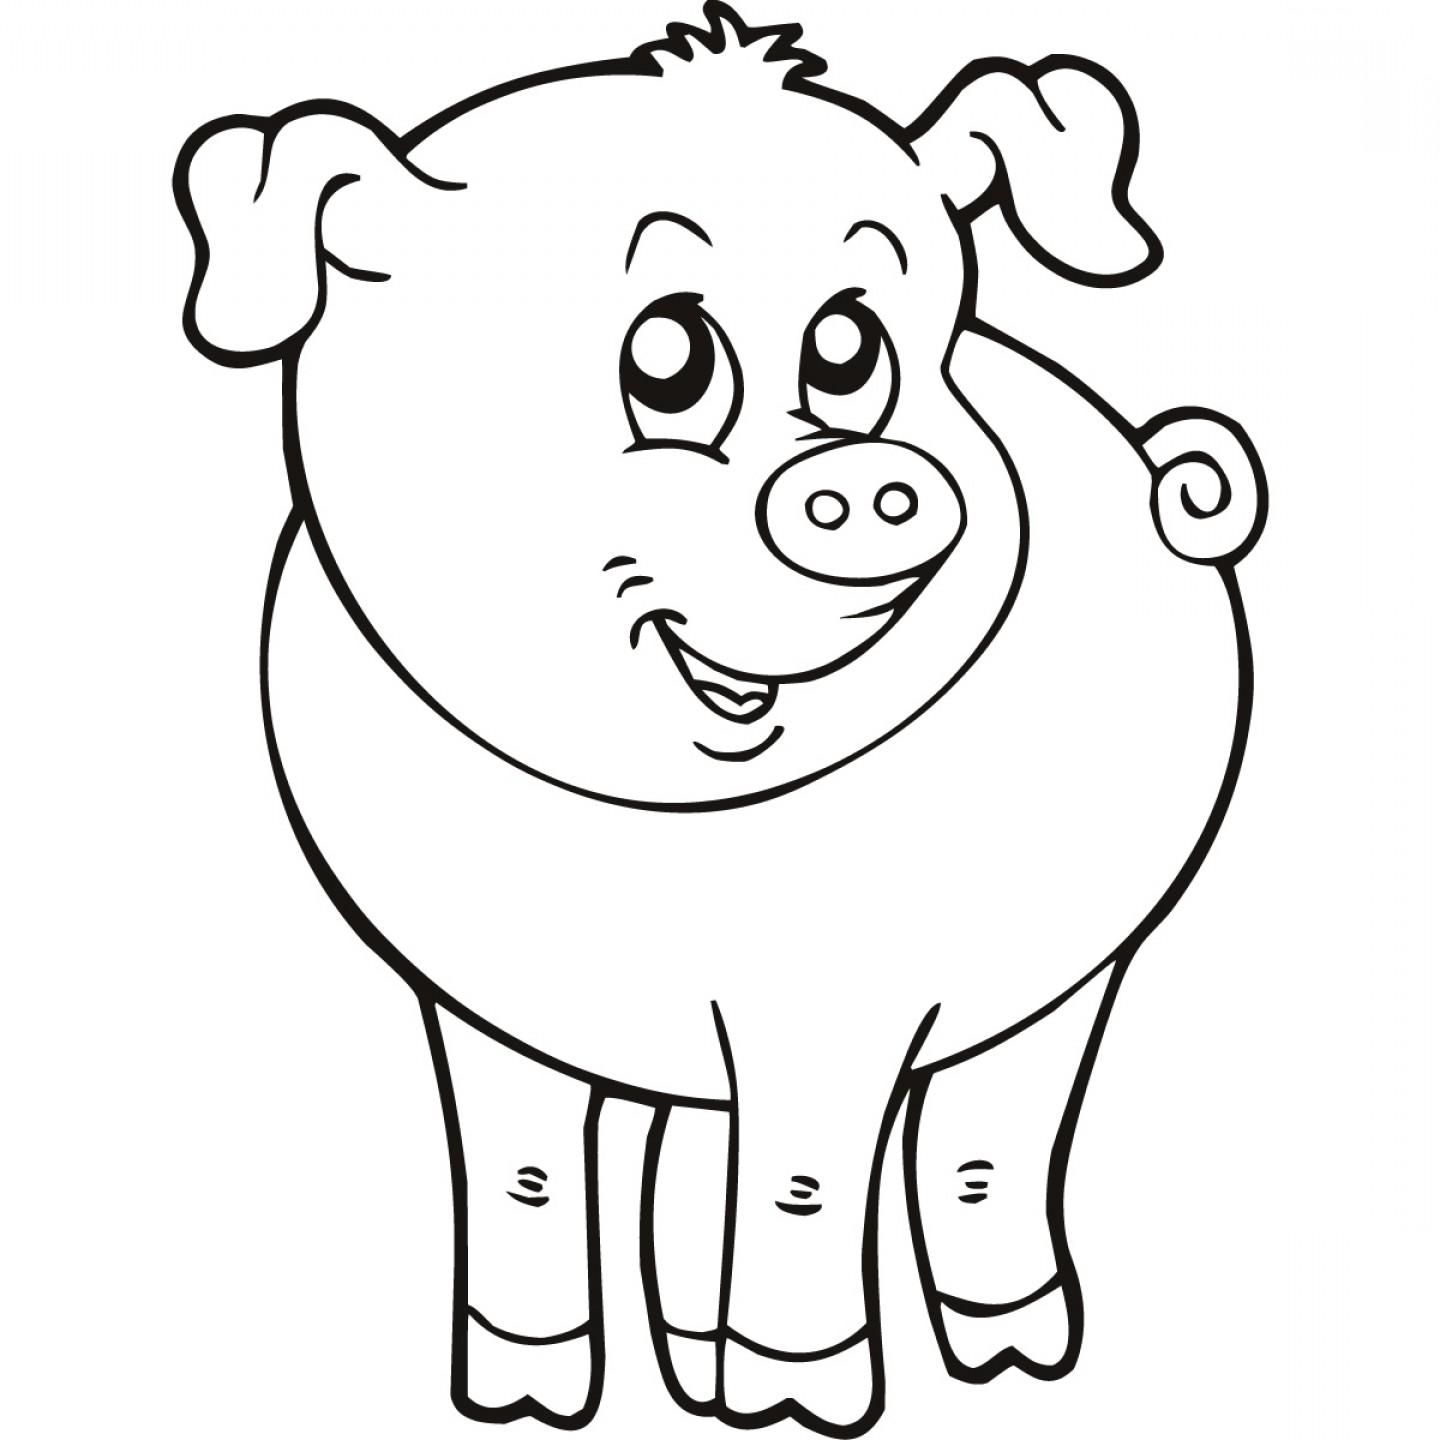 Black Line Drawings Of Animals : Hd animal line art design clipart best